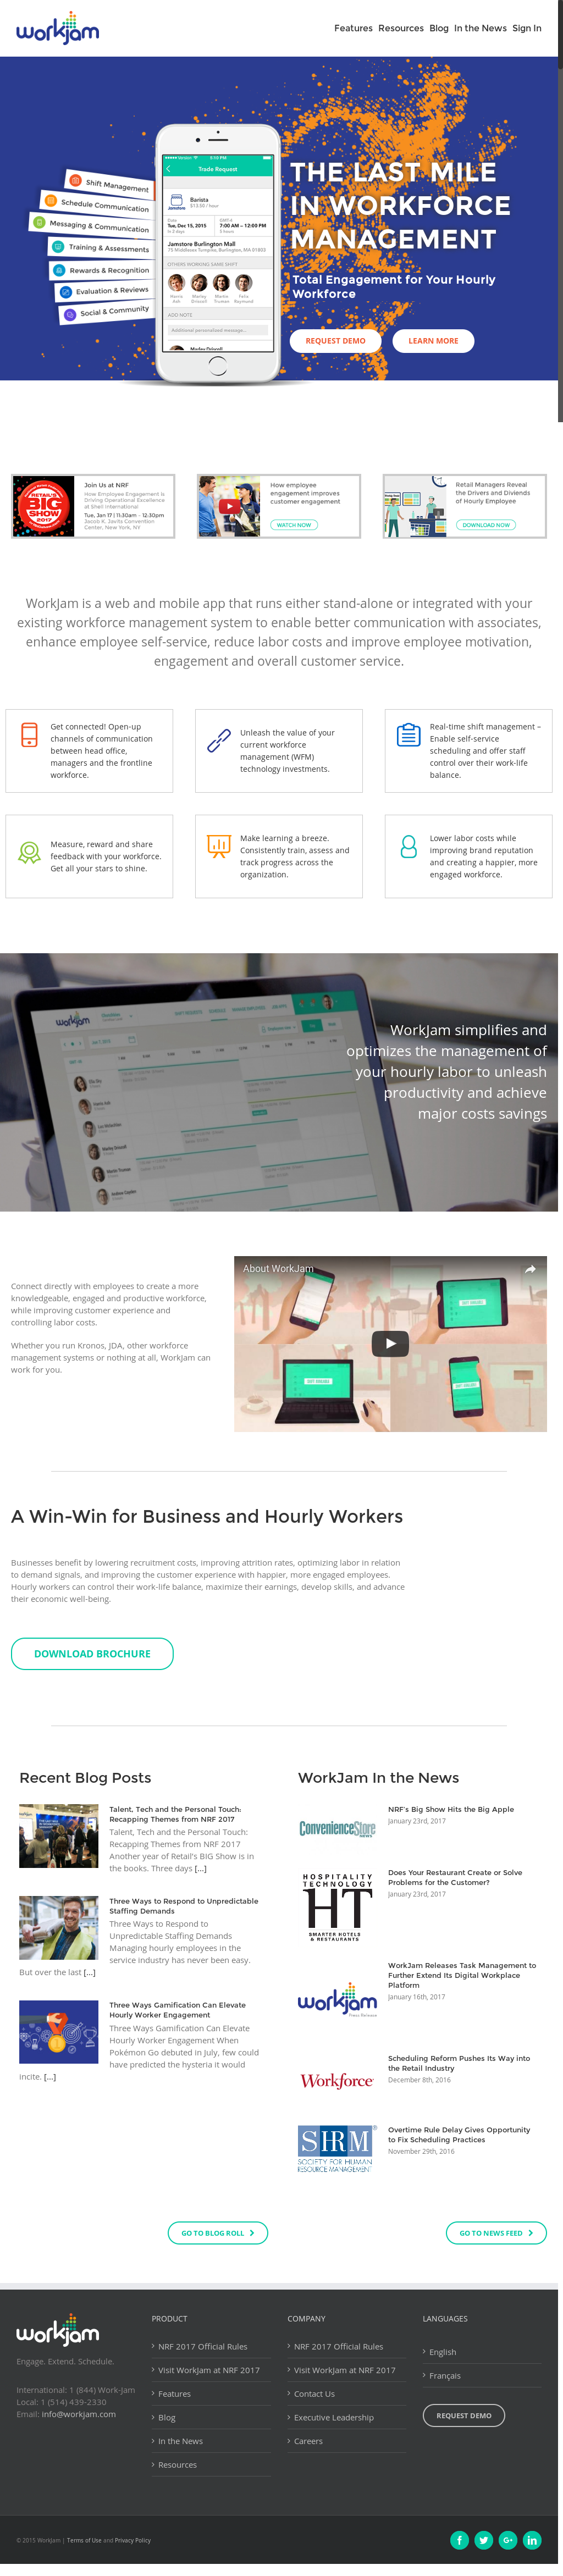 WorkJam Competitors, Revenue and Employees - Owler Company